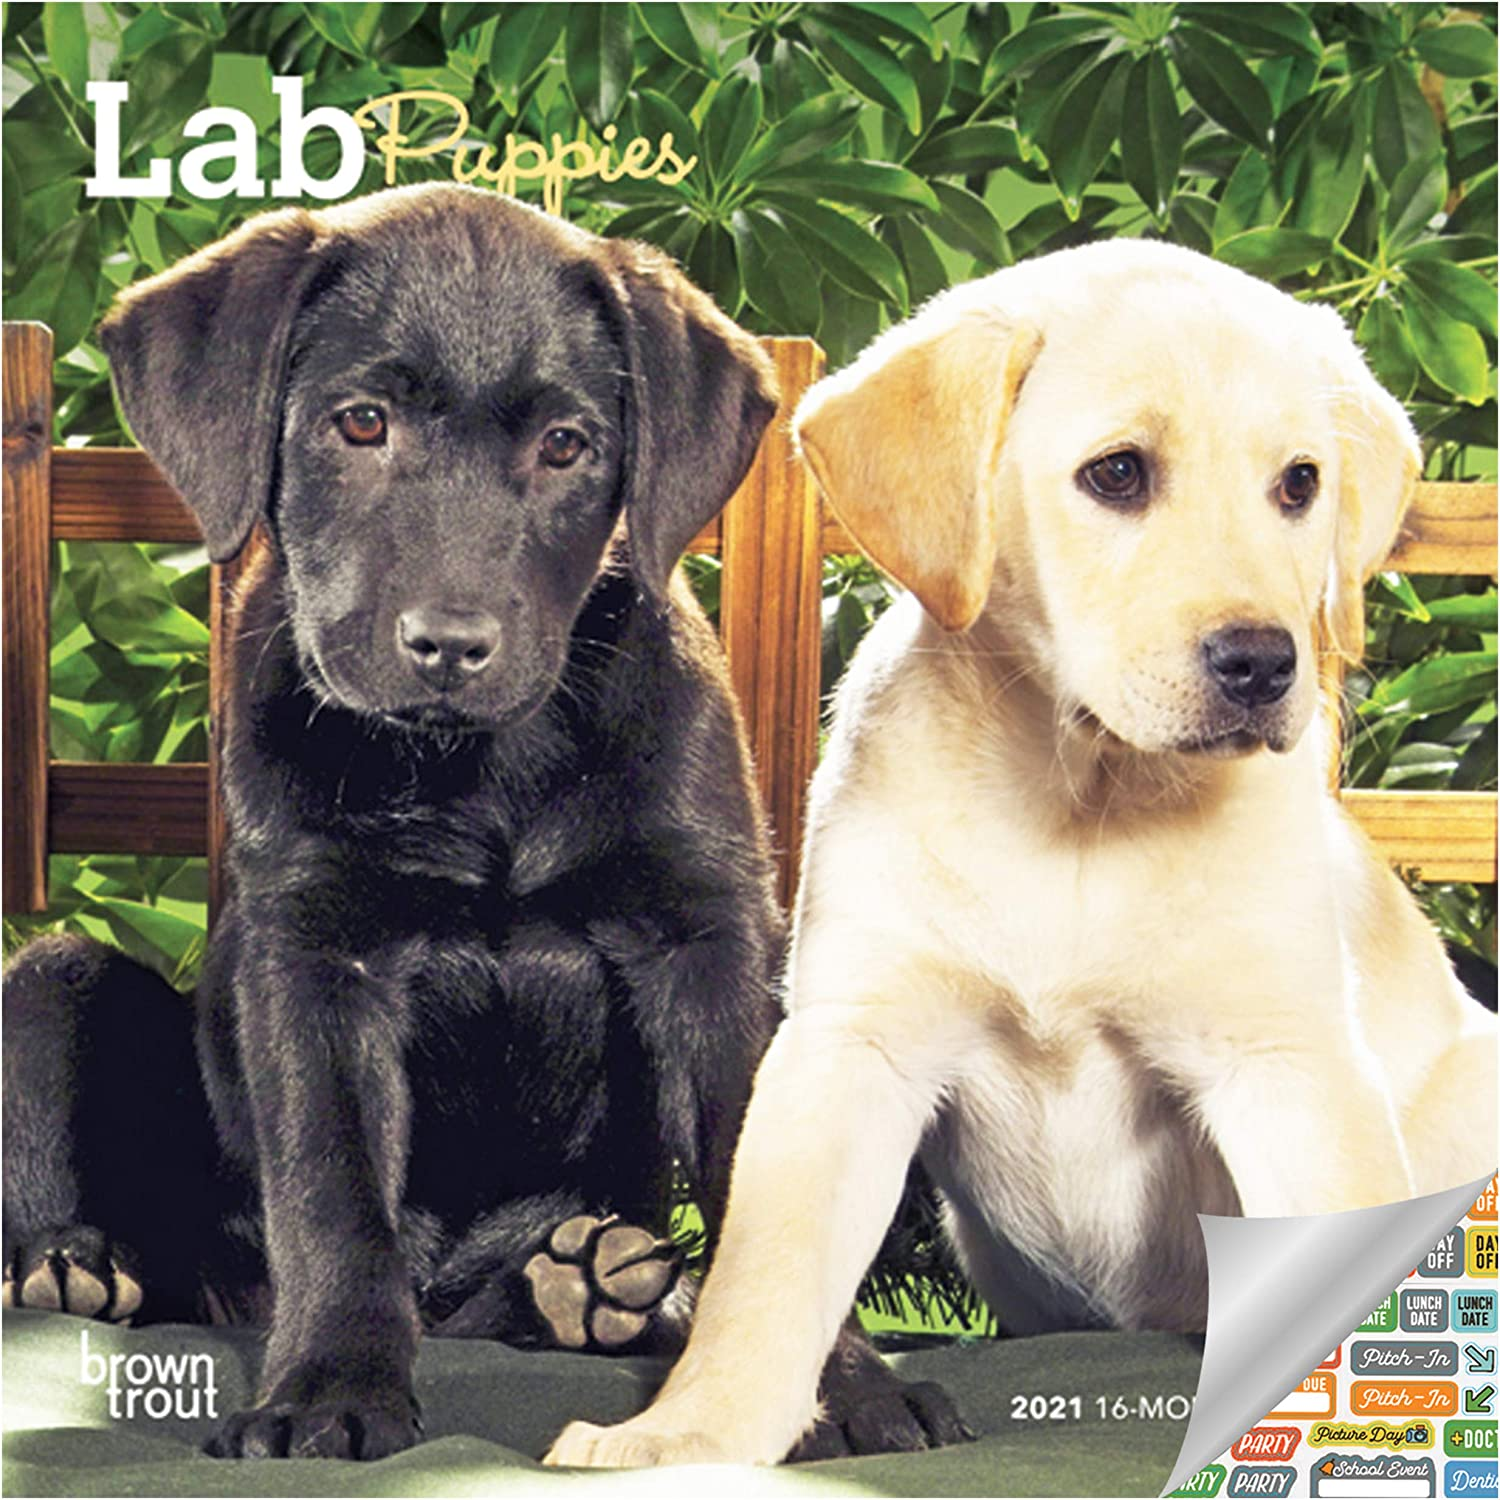 Lab Puppies Calendar 2021 Bundle - Deluxe 2021 Labrador Puppies Mini Calendar with Over 100 Calendar Stickers (Puppy Gifts, Office Supplies)